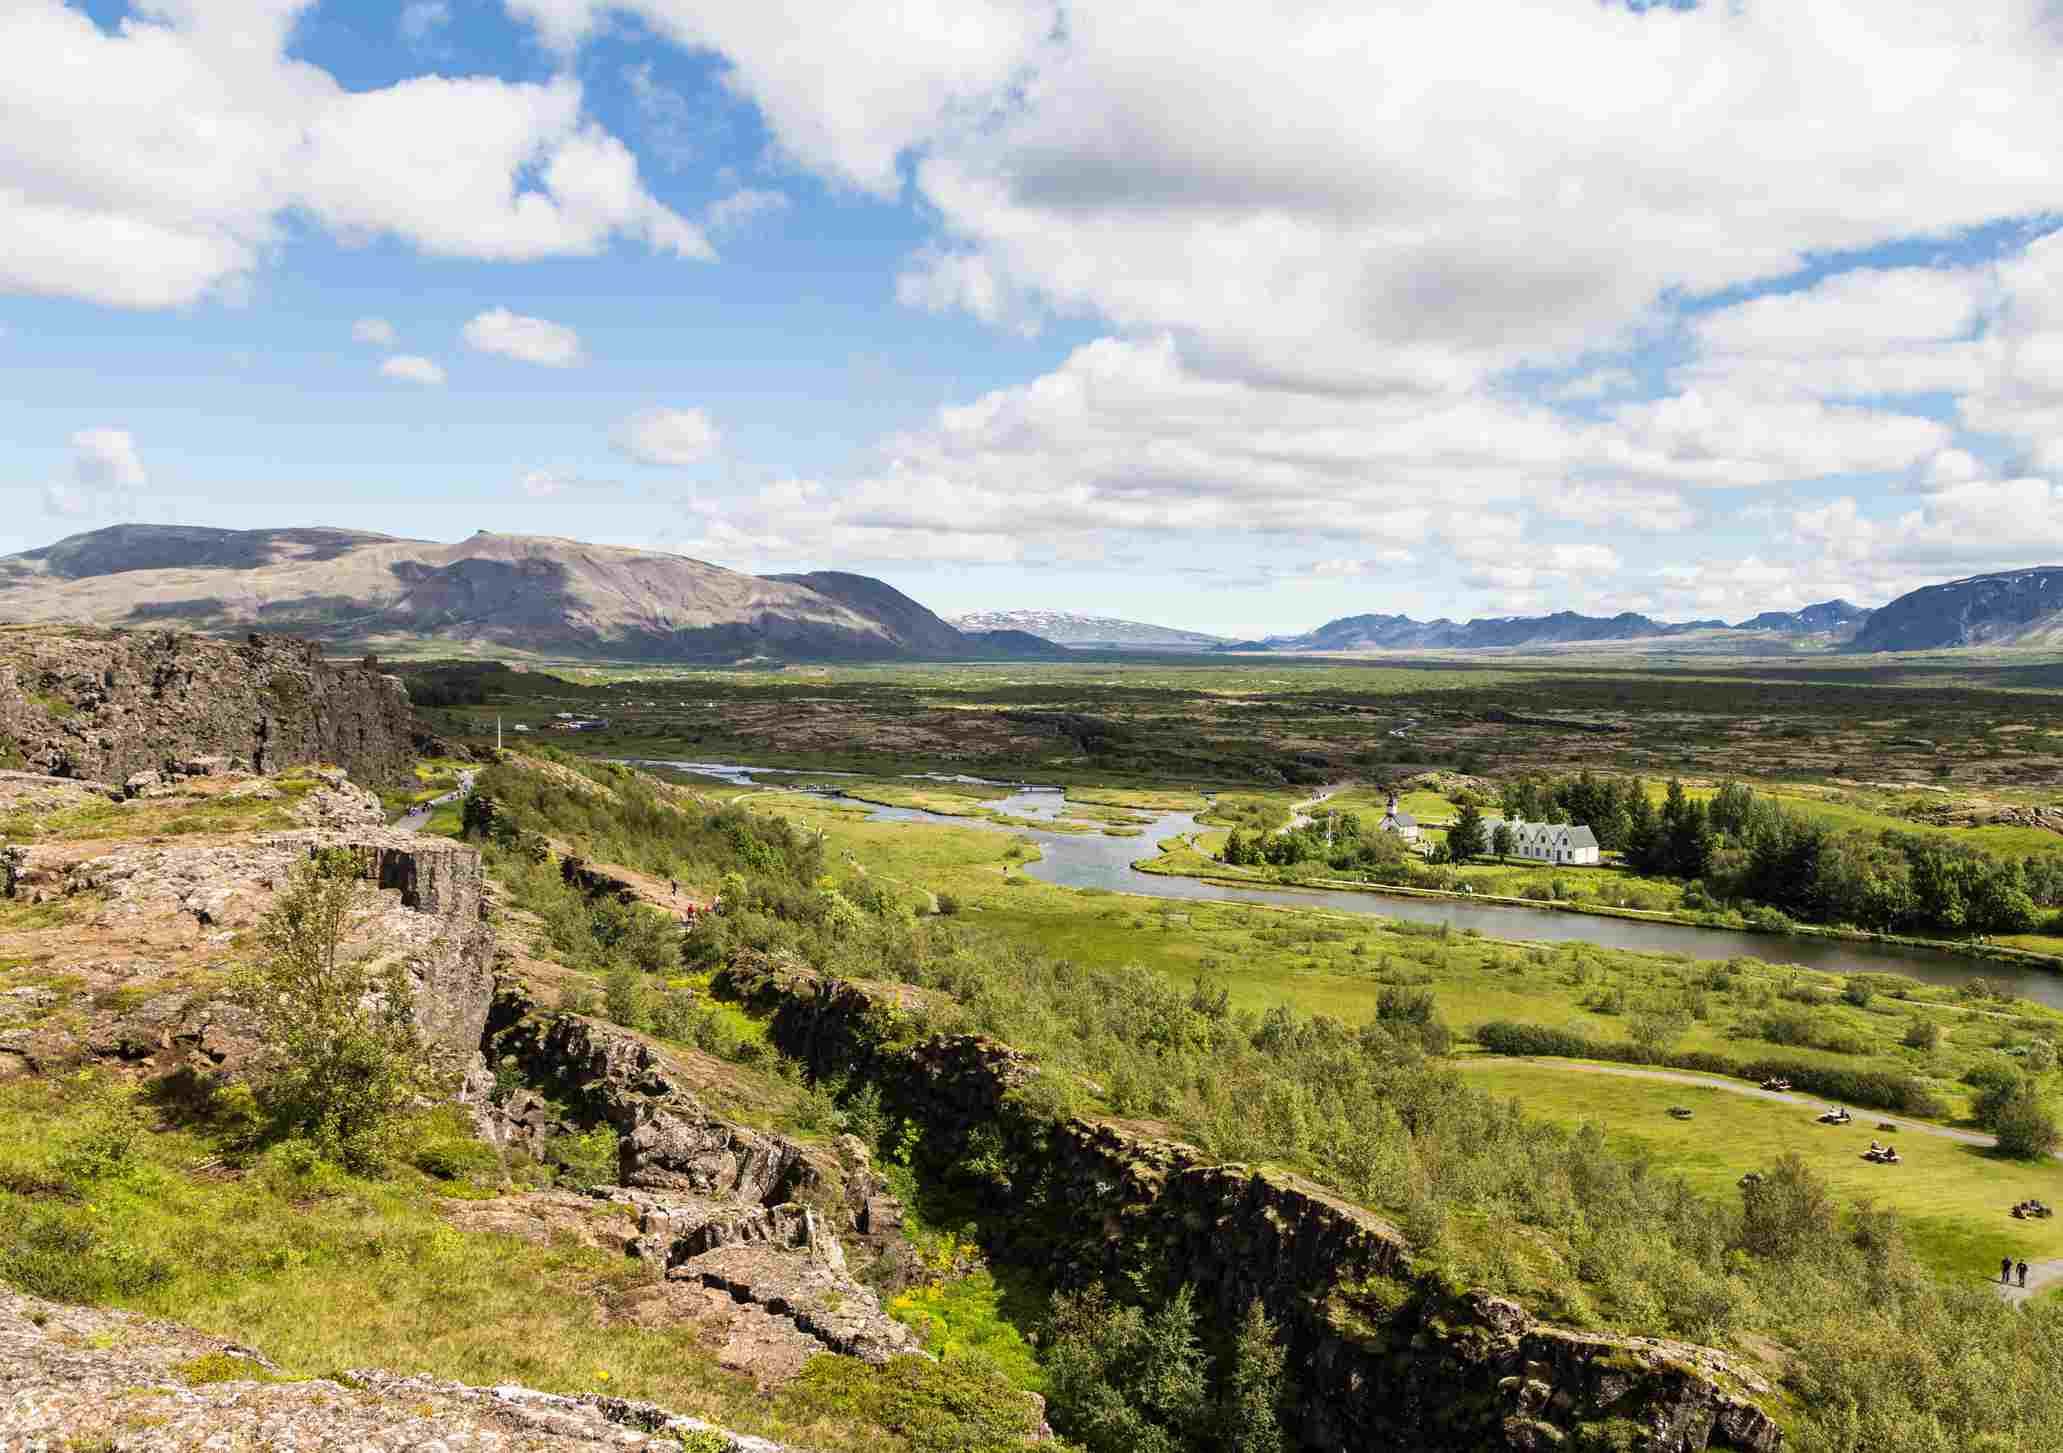 Landscape near the Thingvellir National Park in Iceland, famous for the rift valley resulting from tectonic plates motion. This is one of the many nature attraction of the Golden Circle, a popular day trip from Reykjavik.